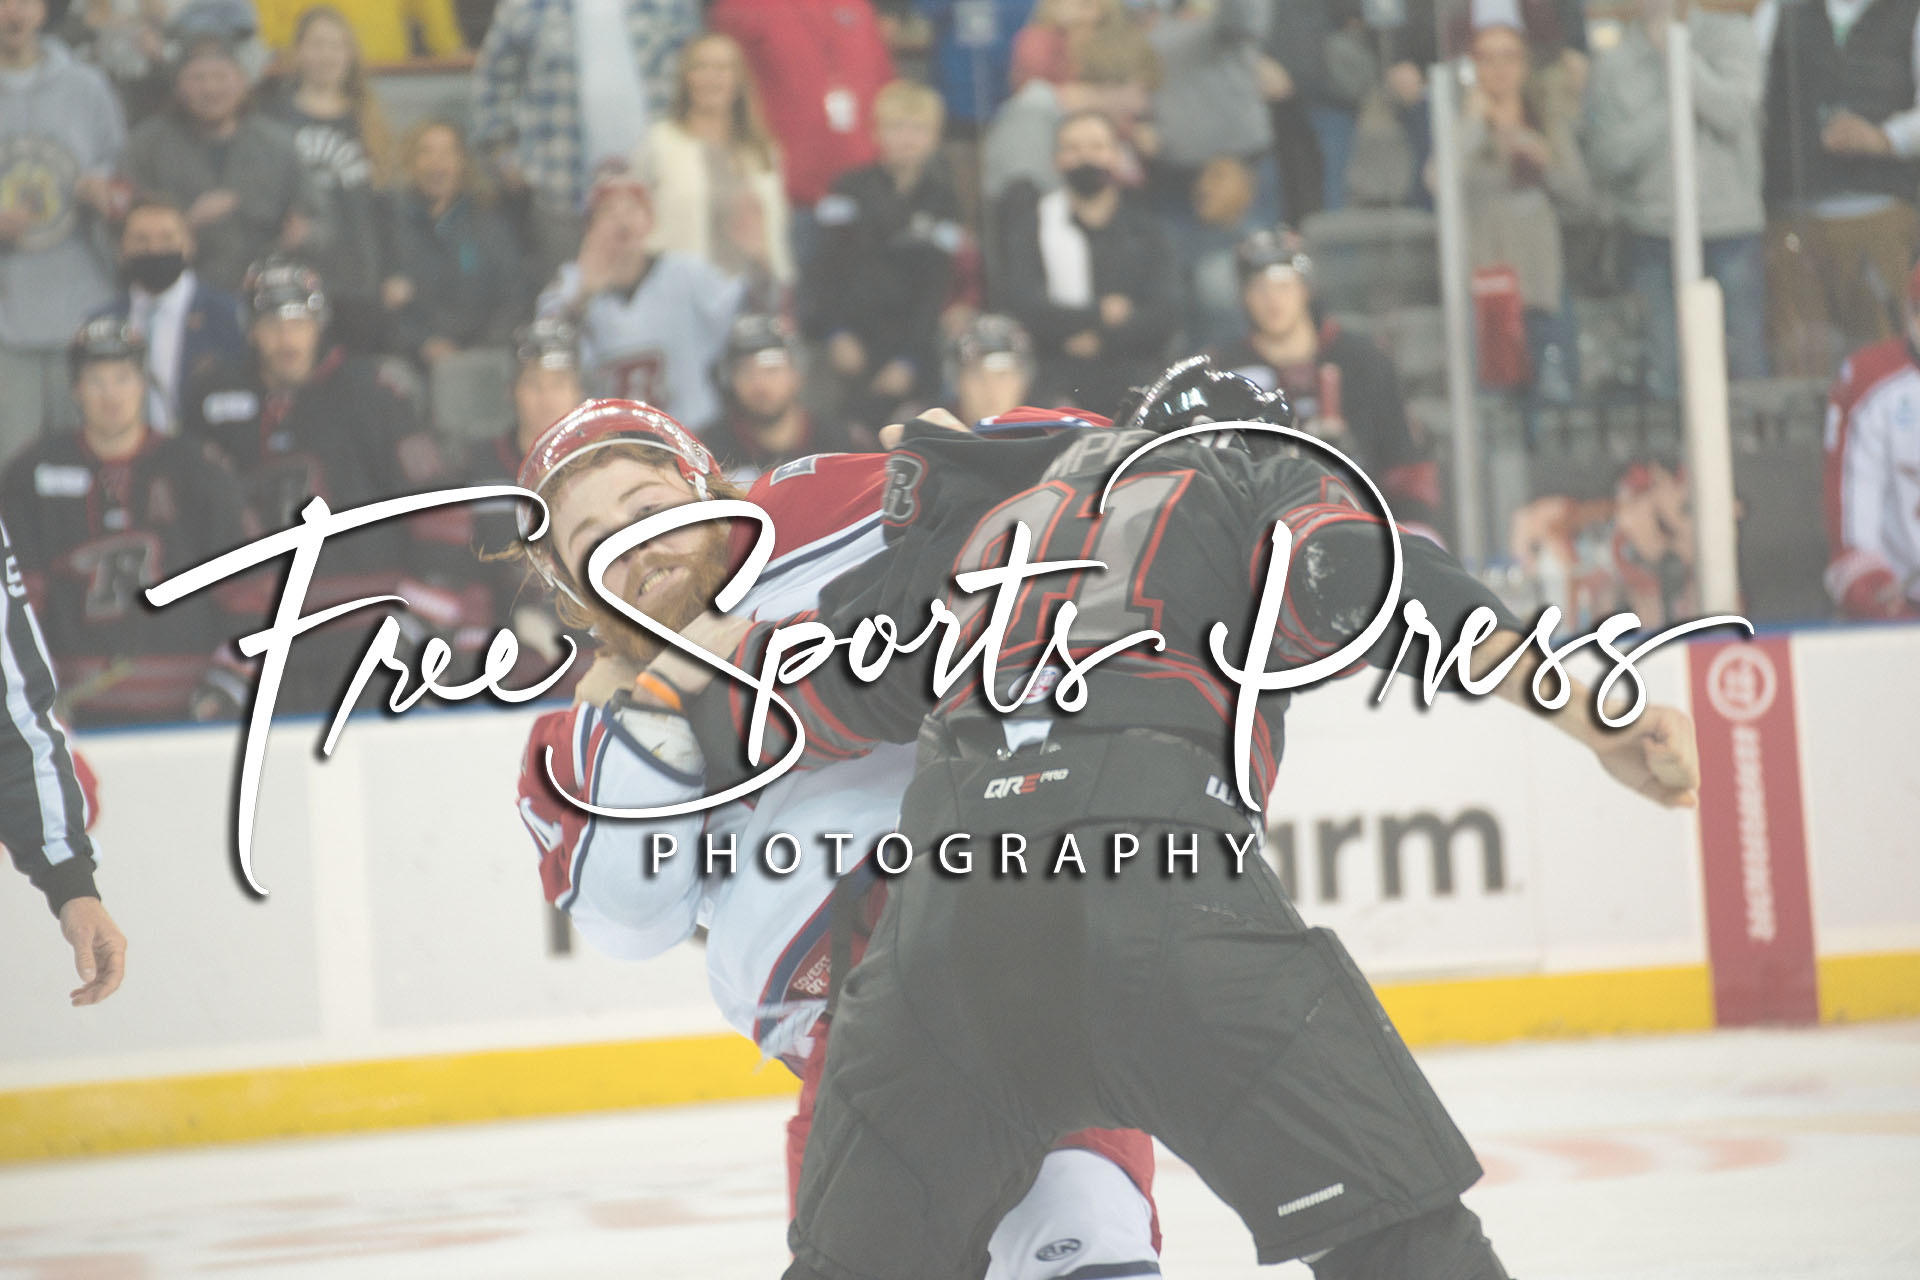 2021 Free Sports Press Photography – General 001